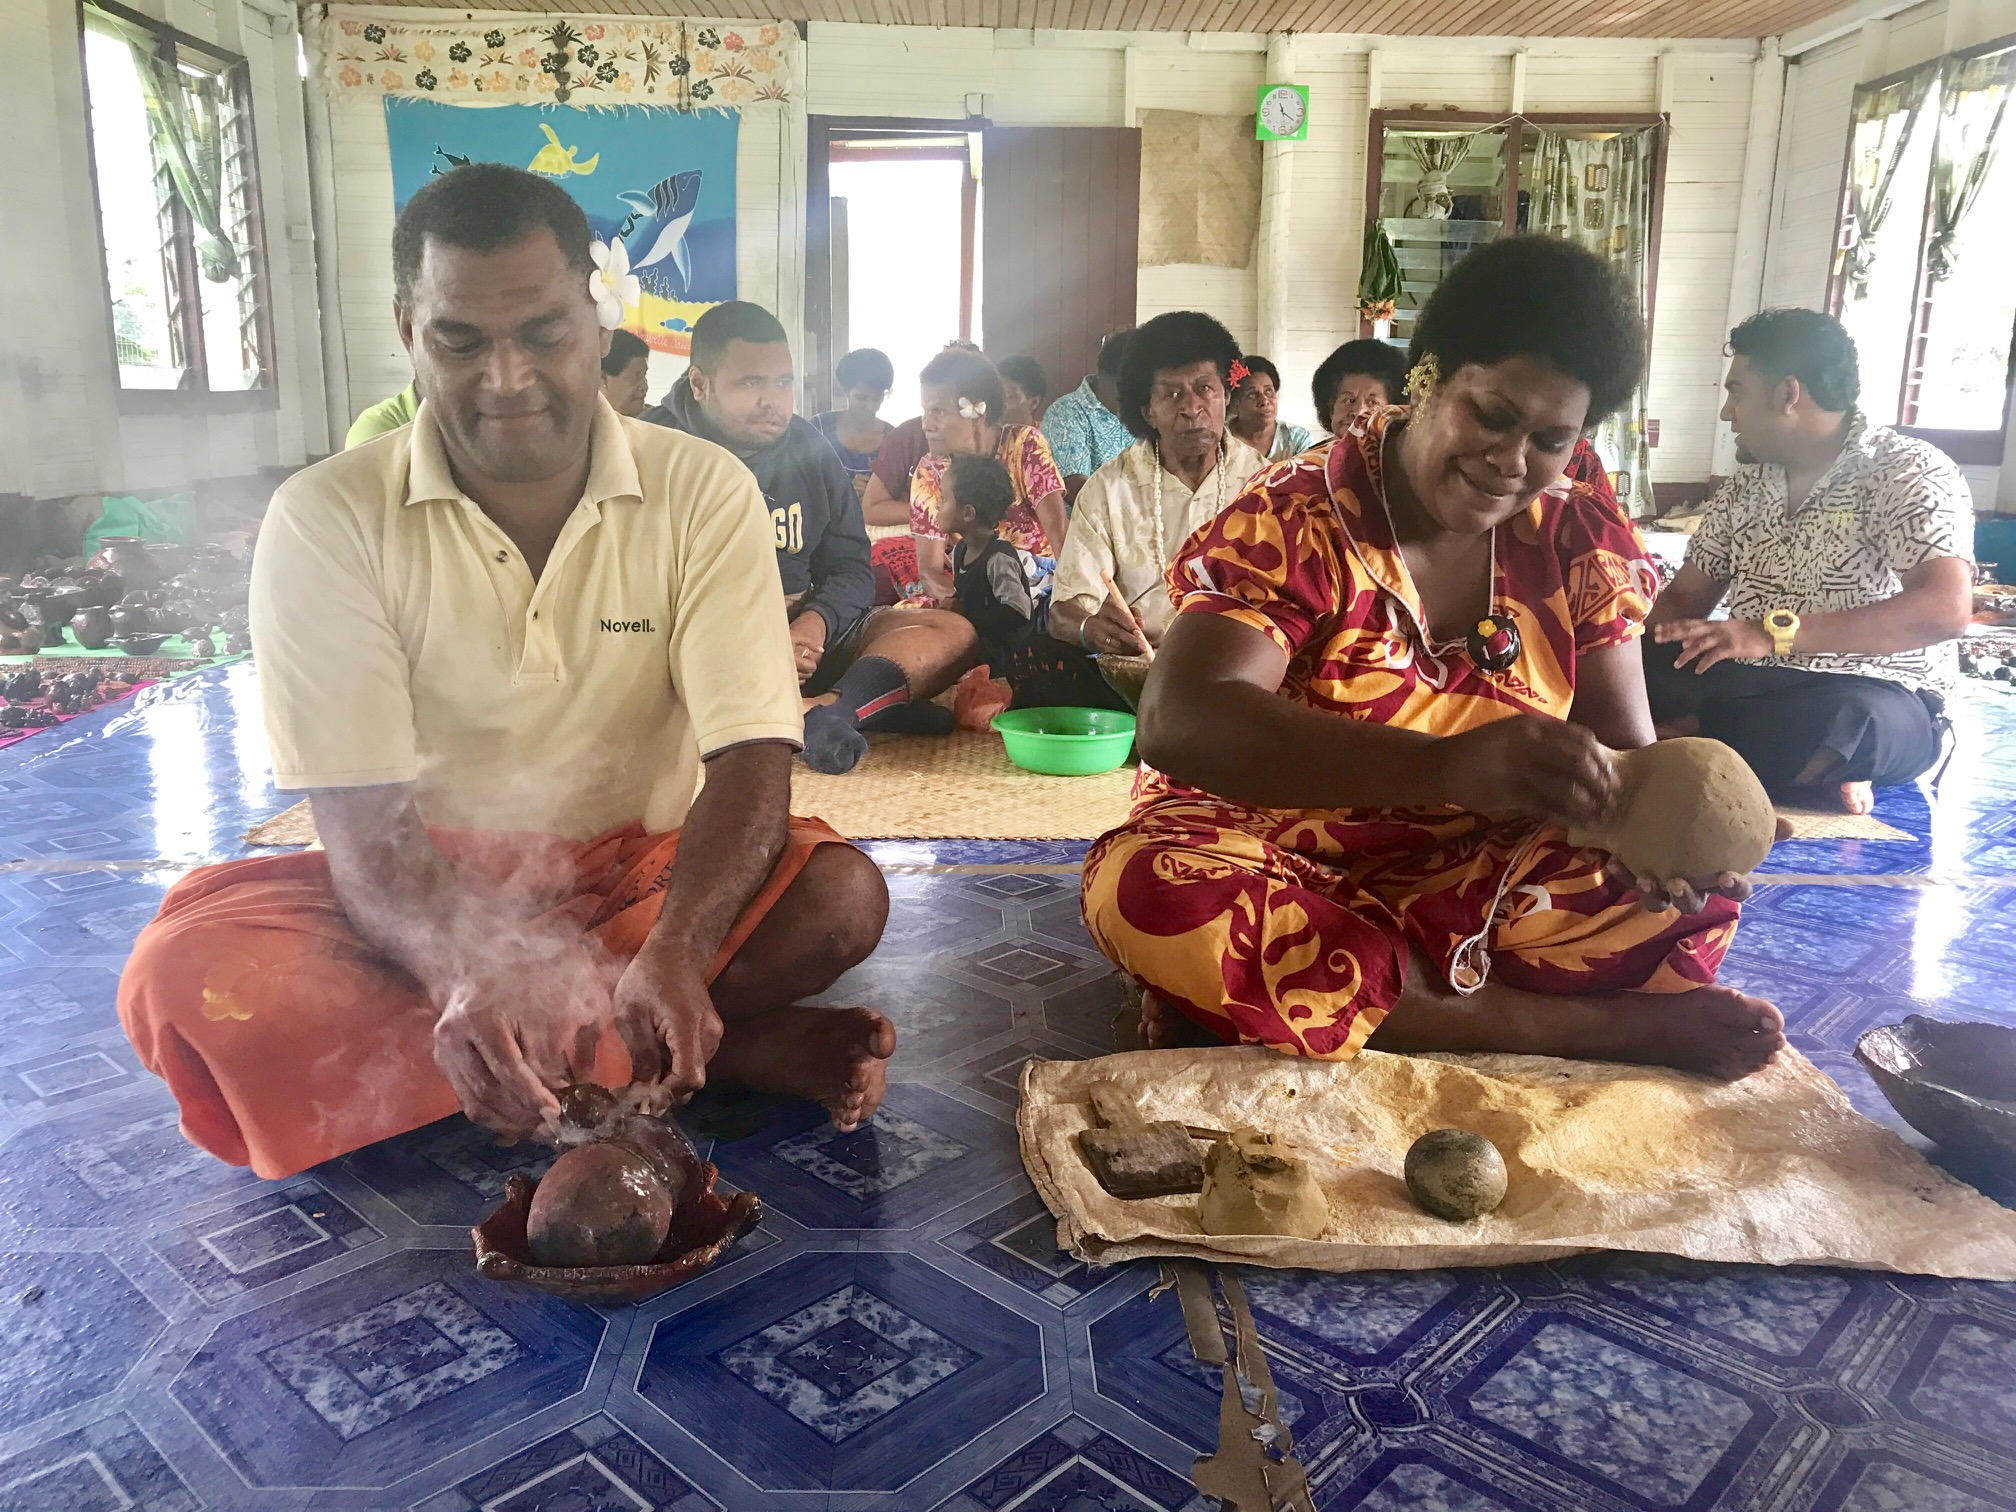 Our visit to Sigatoka pottery village. The locals make the pottery from clay found in the village and glaze it with tree sap. How resourceful!